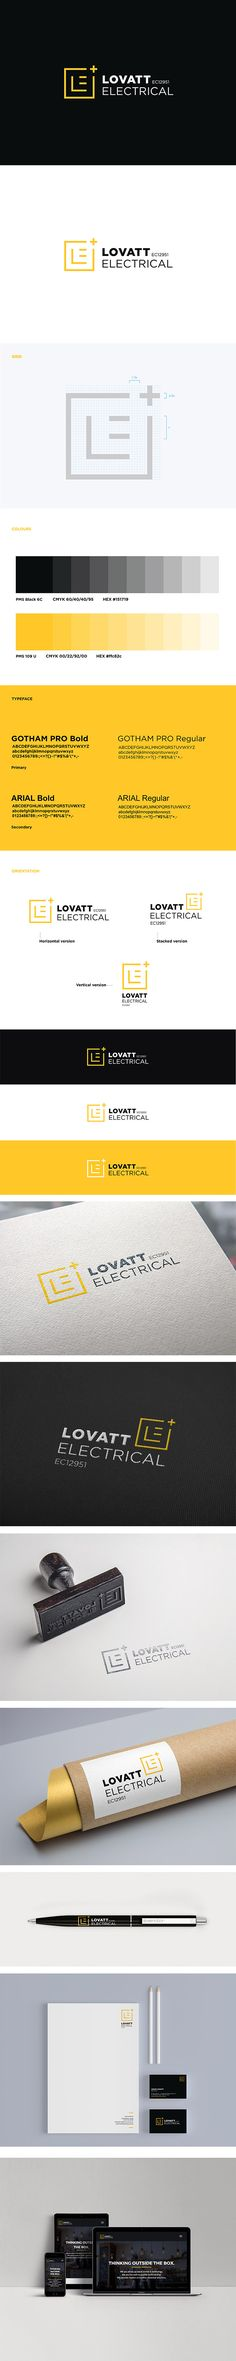 Lovatt Electrical visual identity branding project. Our solution was a very clean and minimal brand identity design, to position Lovatt Electrical as a dynamic & innovative business on the market. The geometric and linear design reinforce the cutting-edge tech electrical expert. The simplicity of the brand application express the efficient and transparent quality workmanship of Lovatt's electricians.